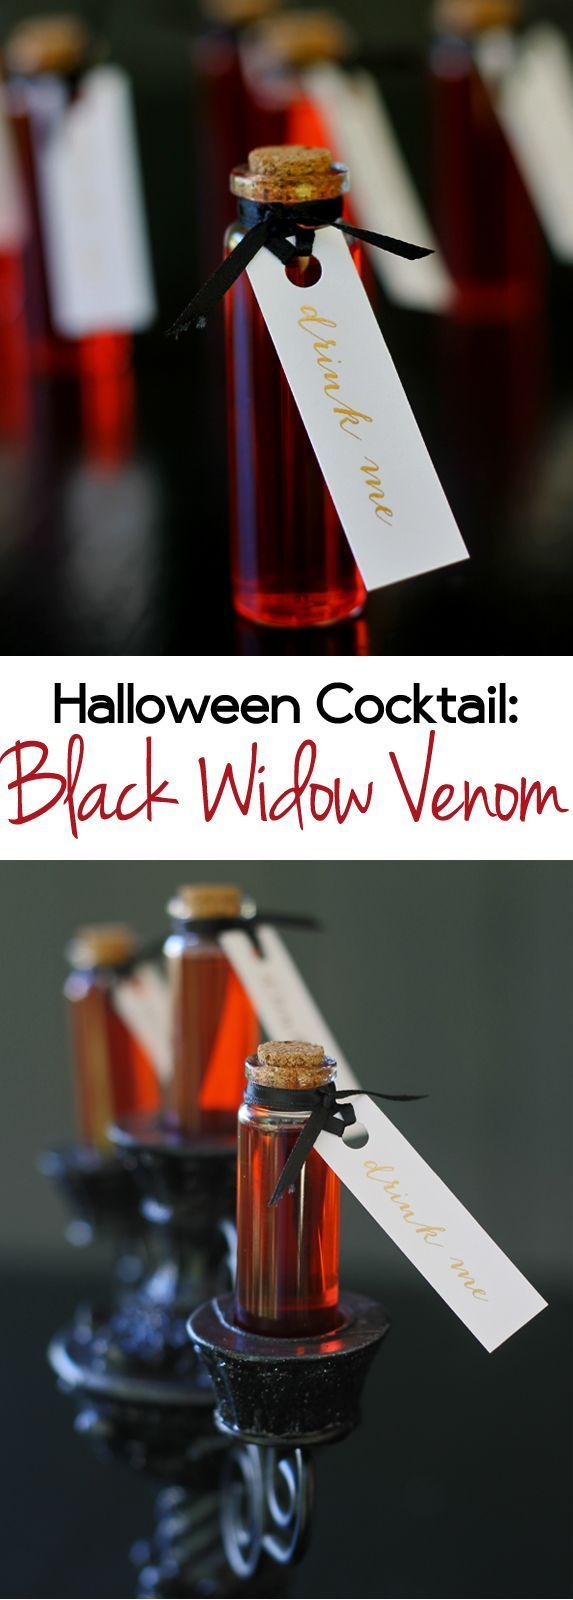 Halloween Cocktail: Black Widow Venom